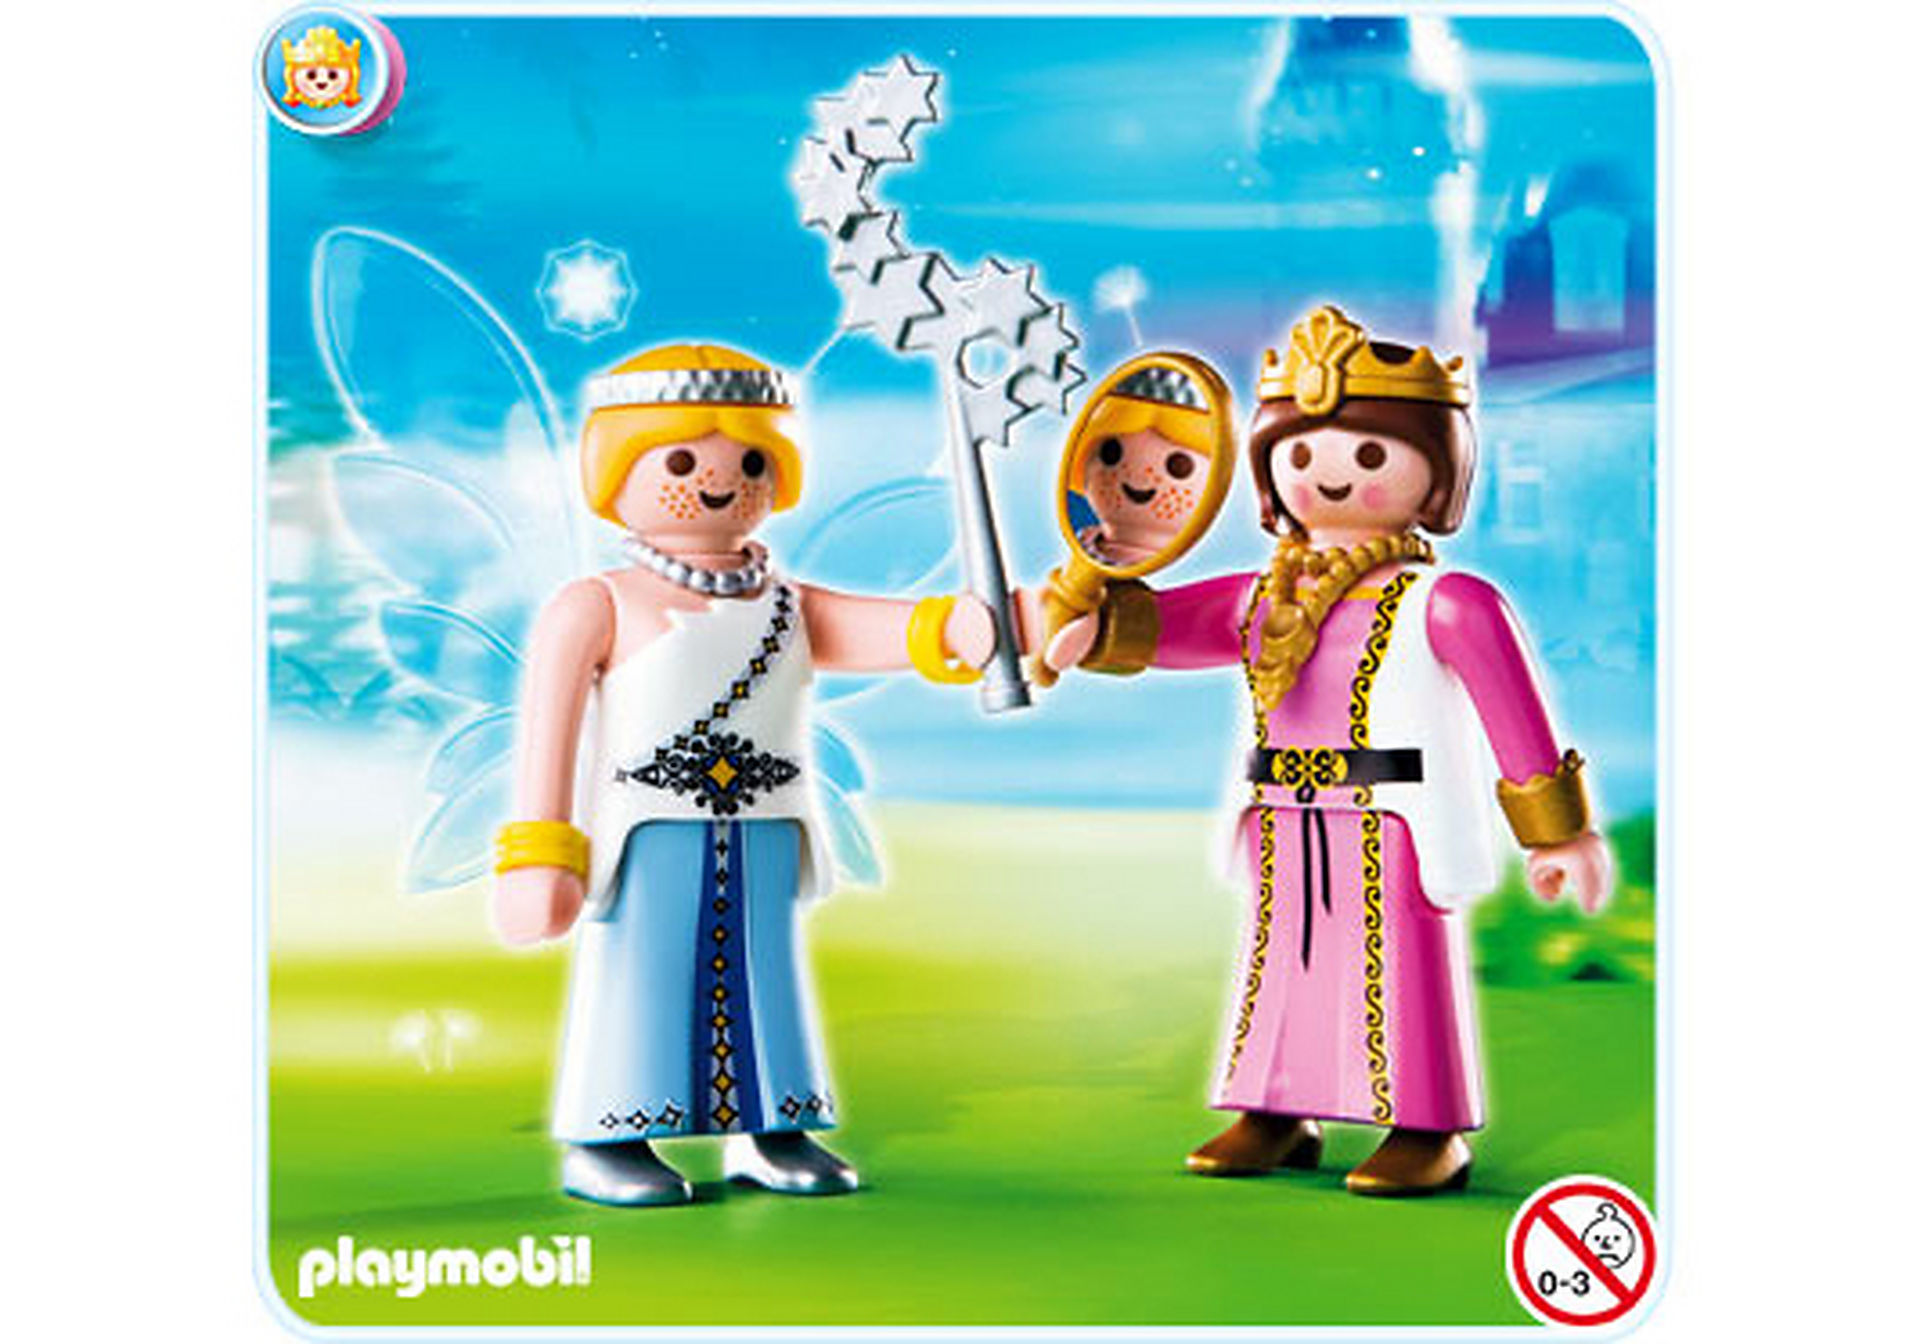 4128-A Duo Pack Prinzessin mit Zauber-Fee zoom image1